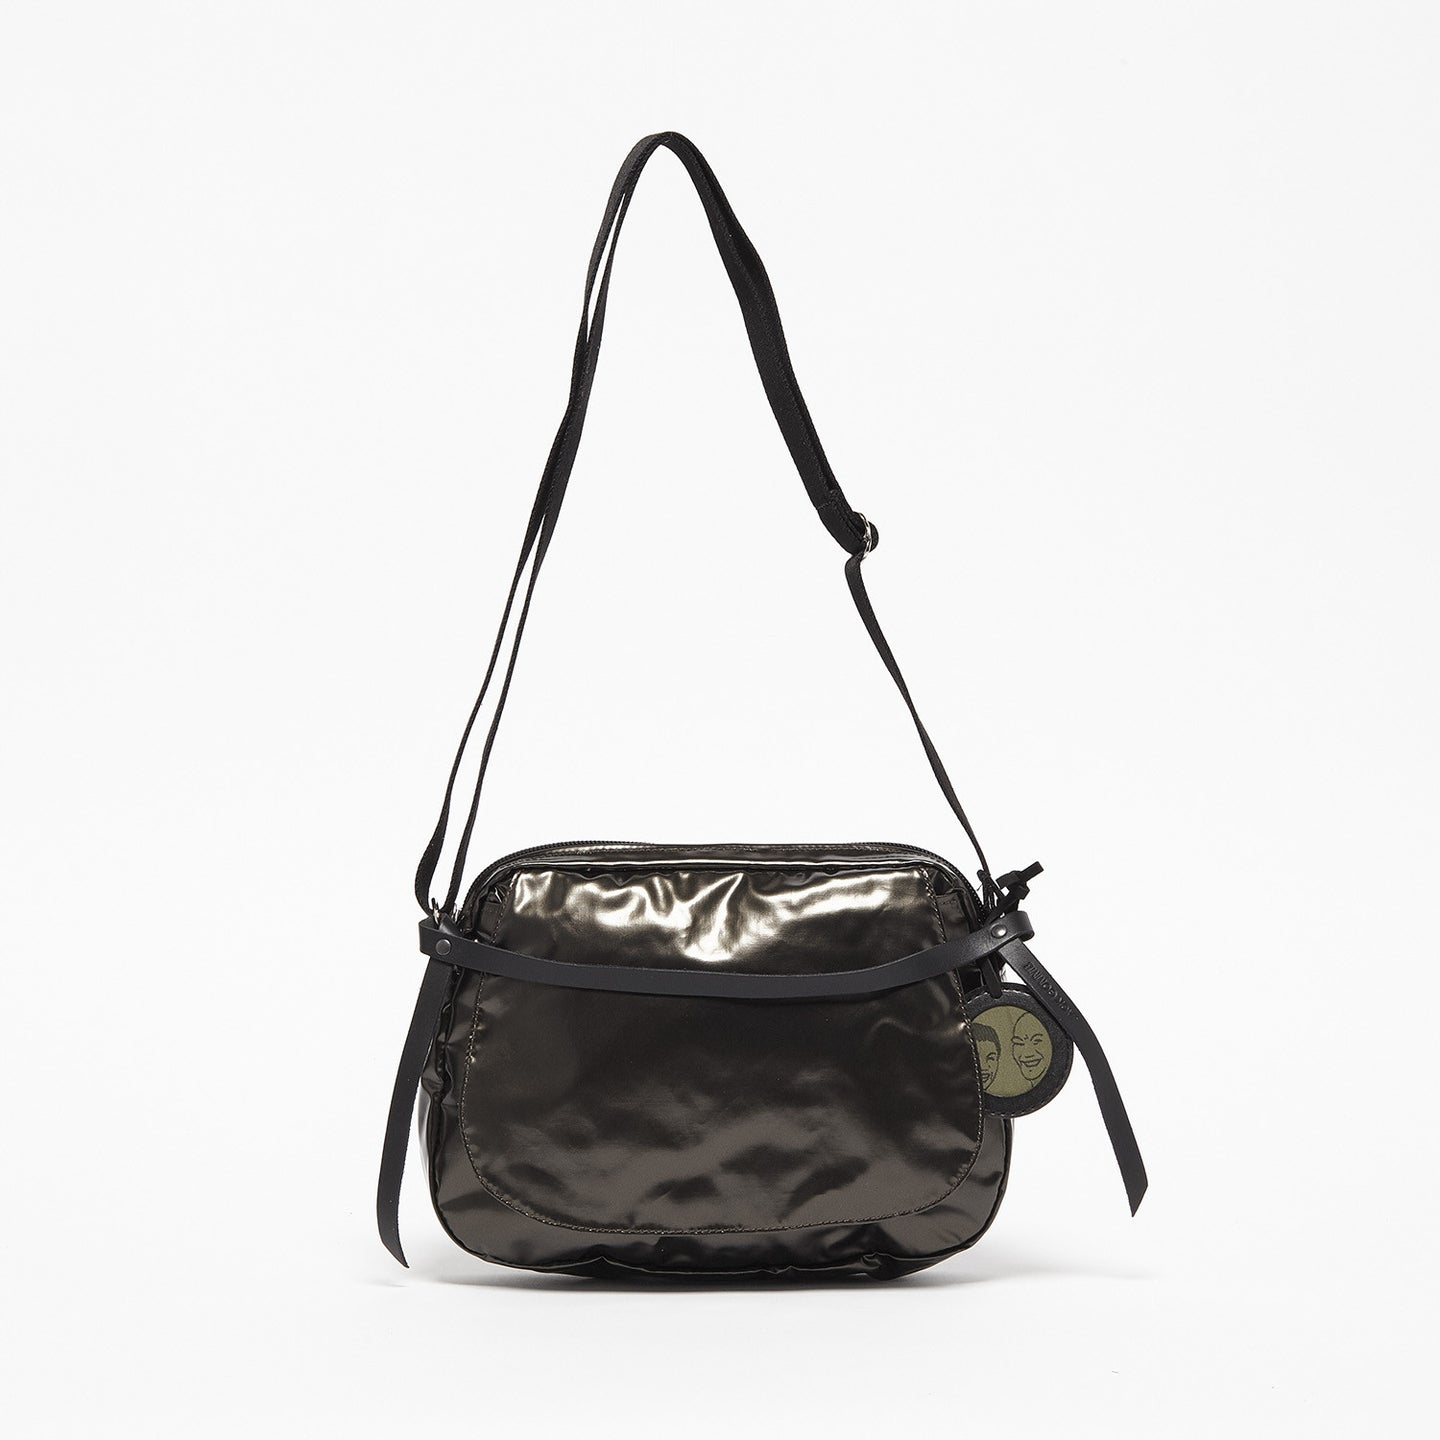 Light Happy Shoulder Bag Bronze